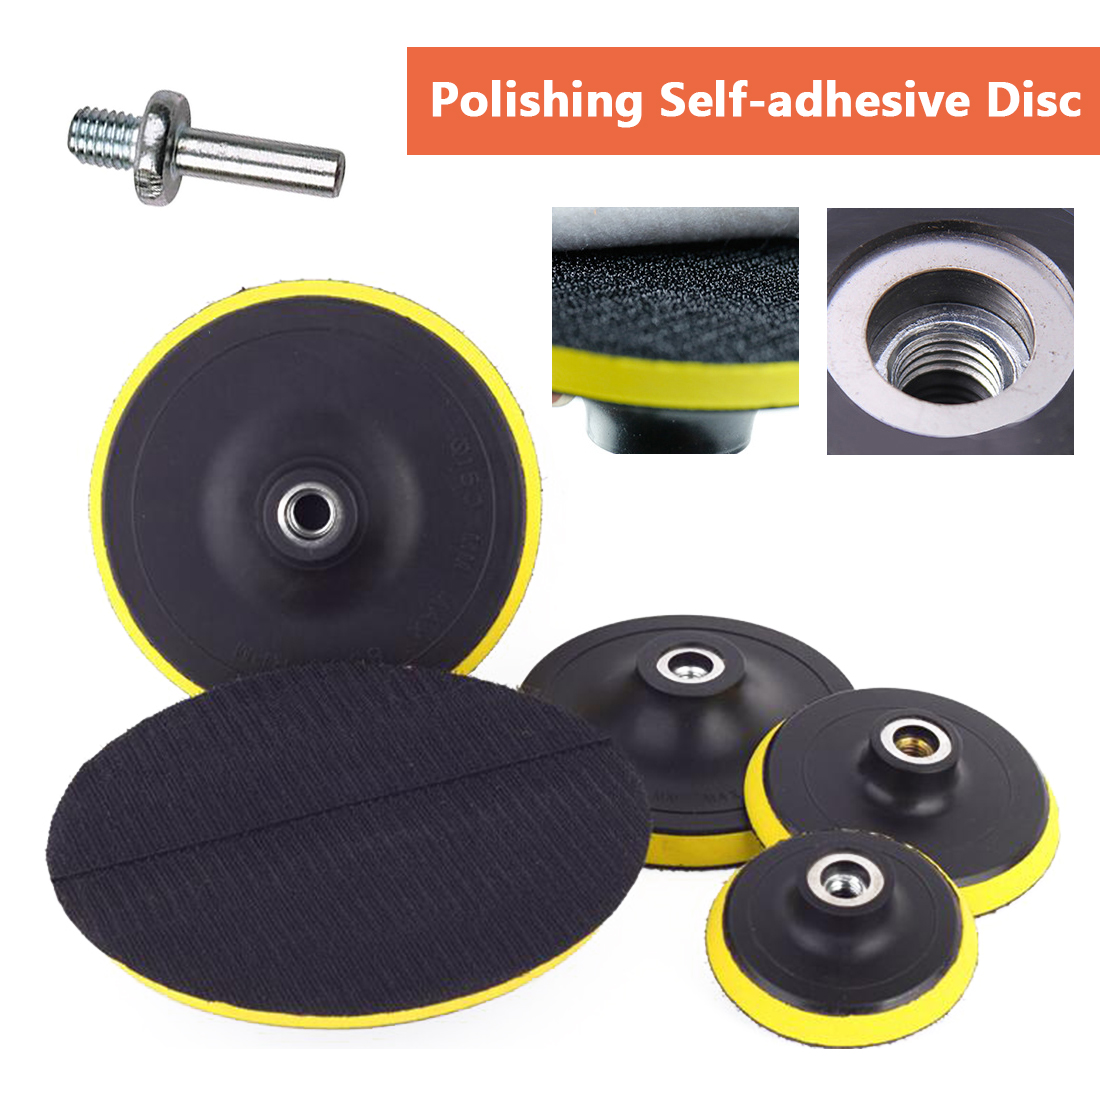 Tools 3/4/5/6/7 Self-adhesive Disc & Drill Rod For Car Paint Care Polishing Pad 75mm 100mm 125mm 150mm 180mm To Ensure A Like-New Appearance Indefinably